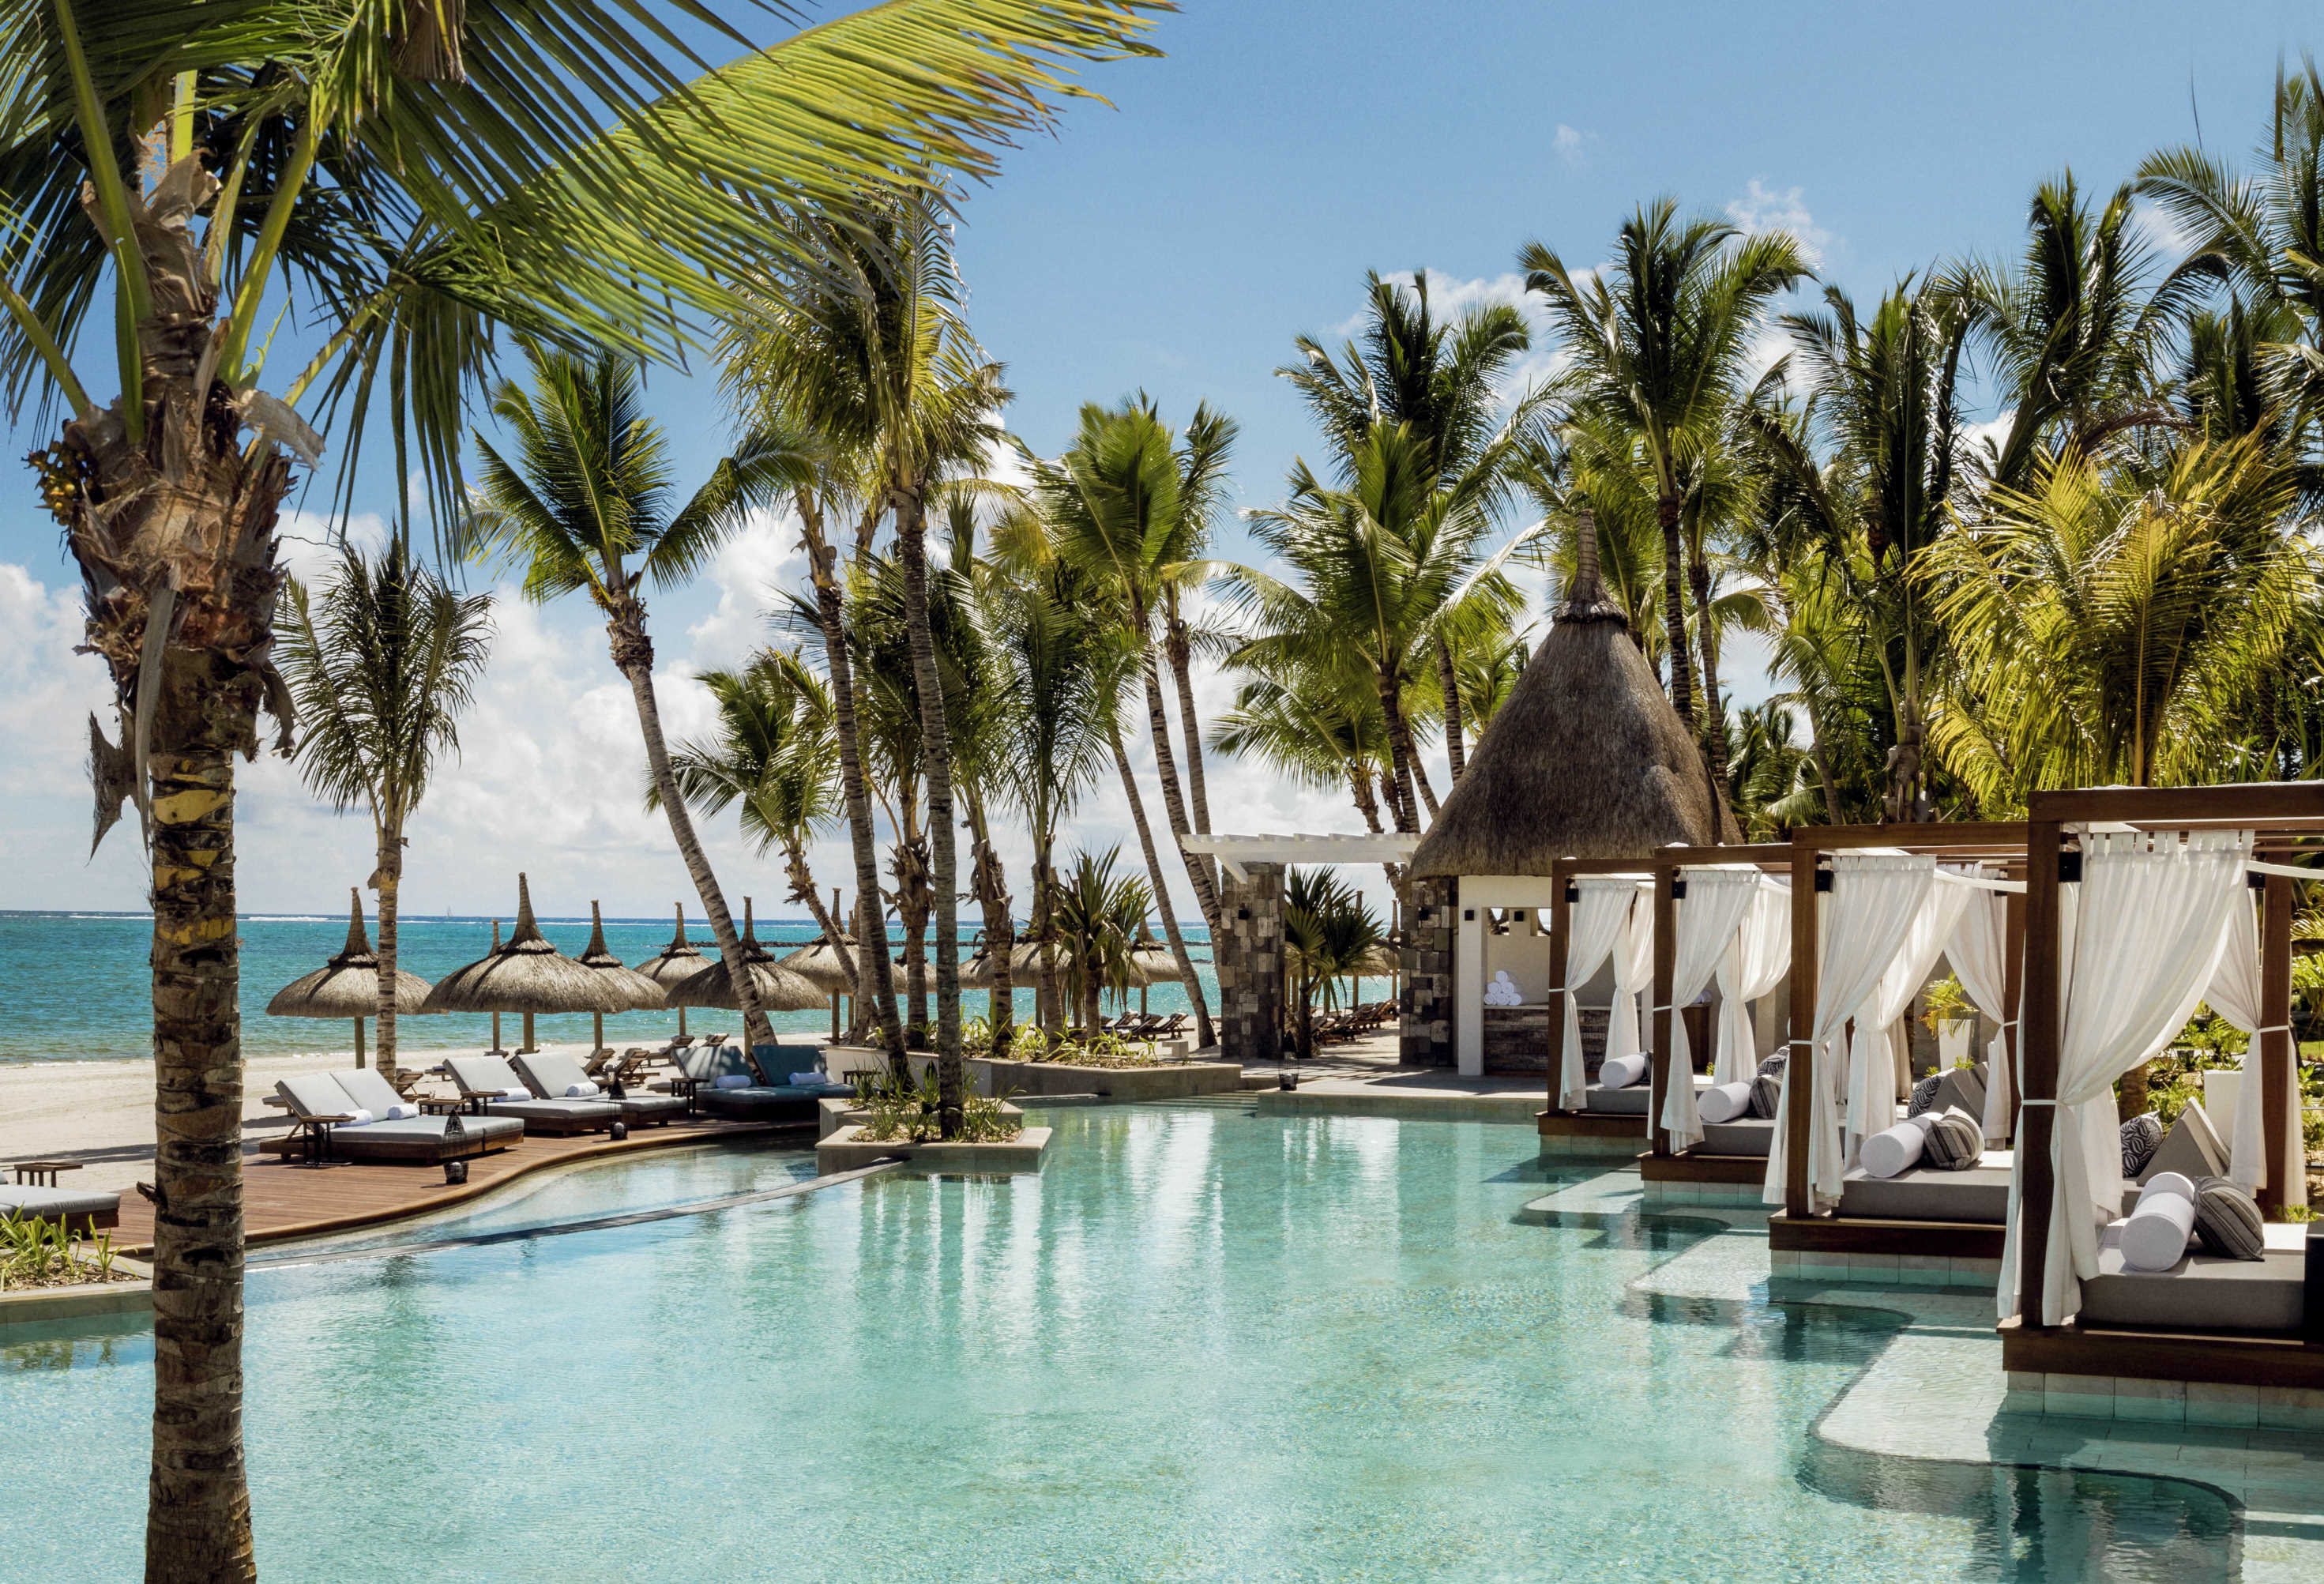 La Pointe Pool at One&Only Le Saint Geran